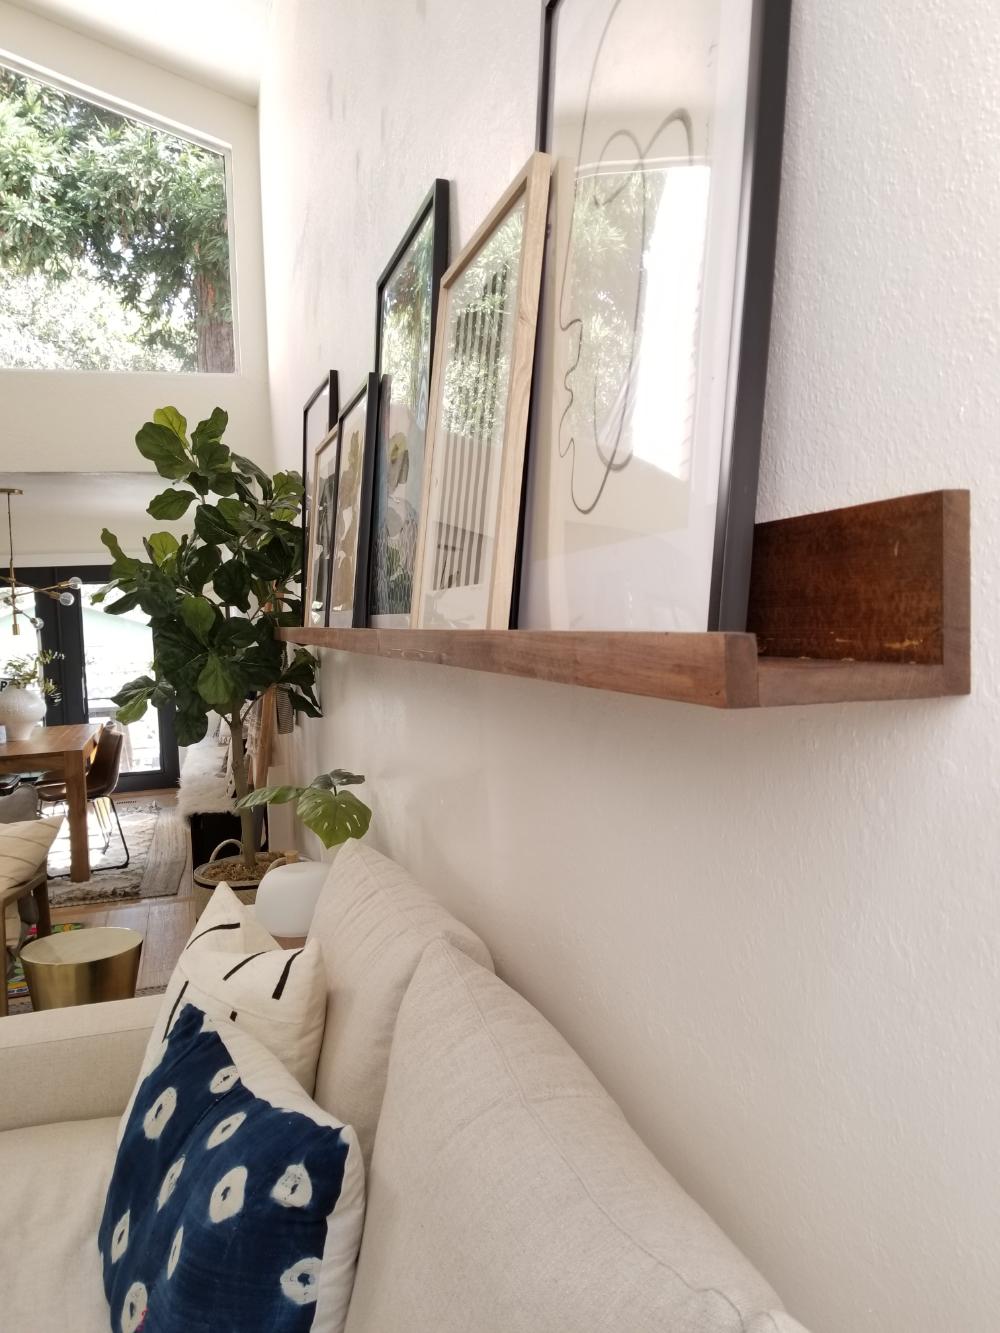 Diy 10 Foot Picture Ledge In 10 Steps For Under 50 Bucks Picture Ledge Home Decor Woman Cave